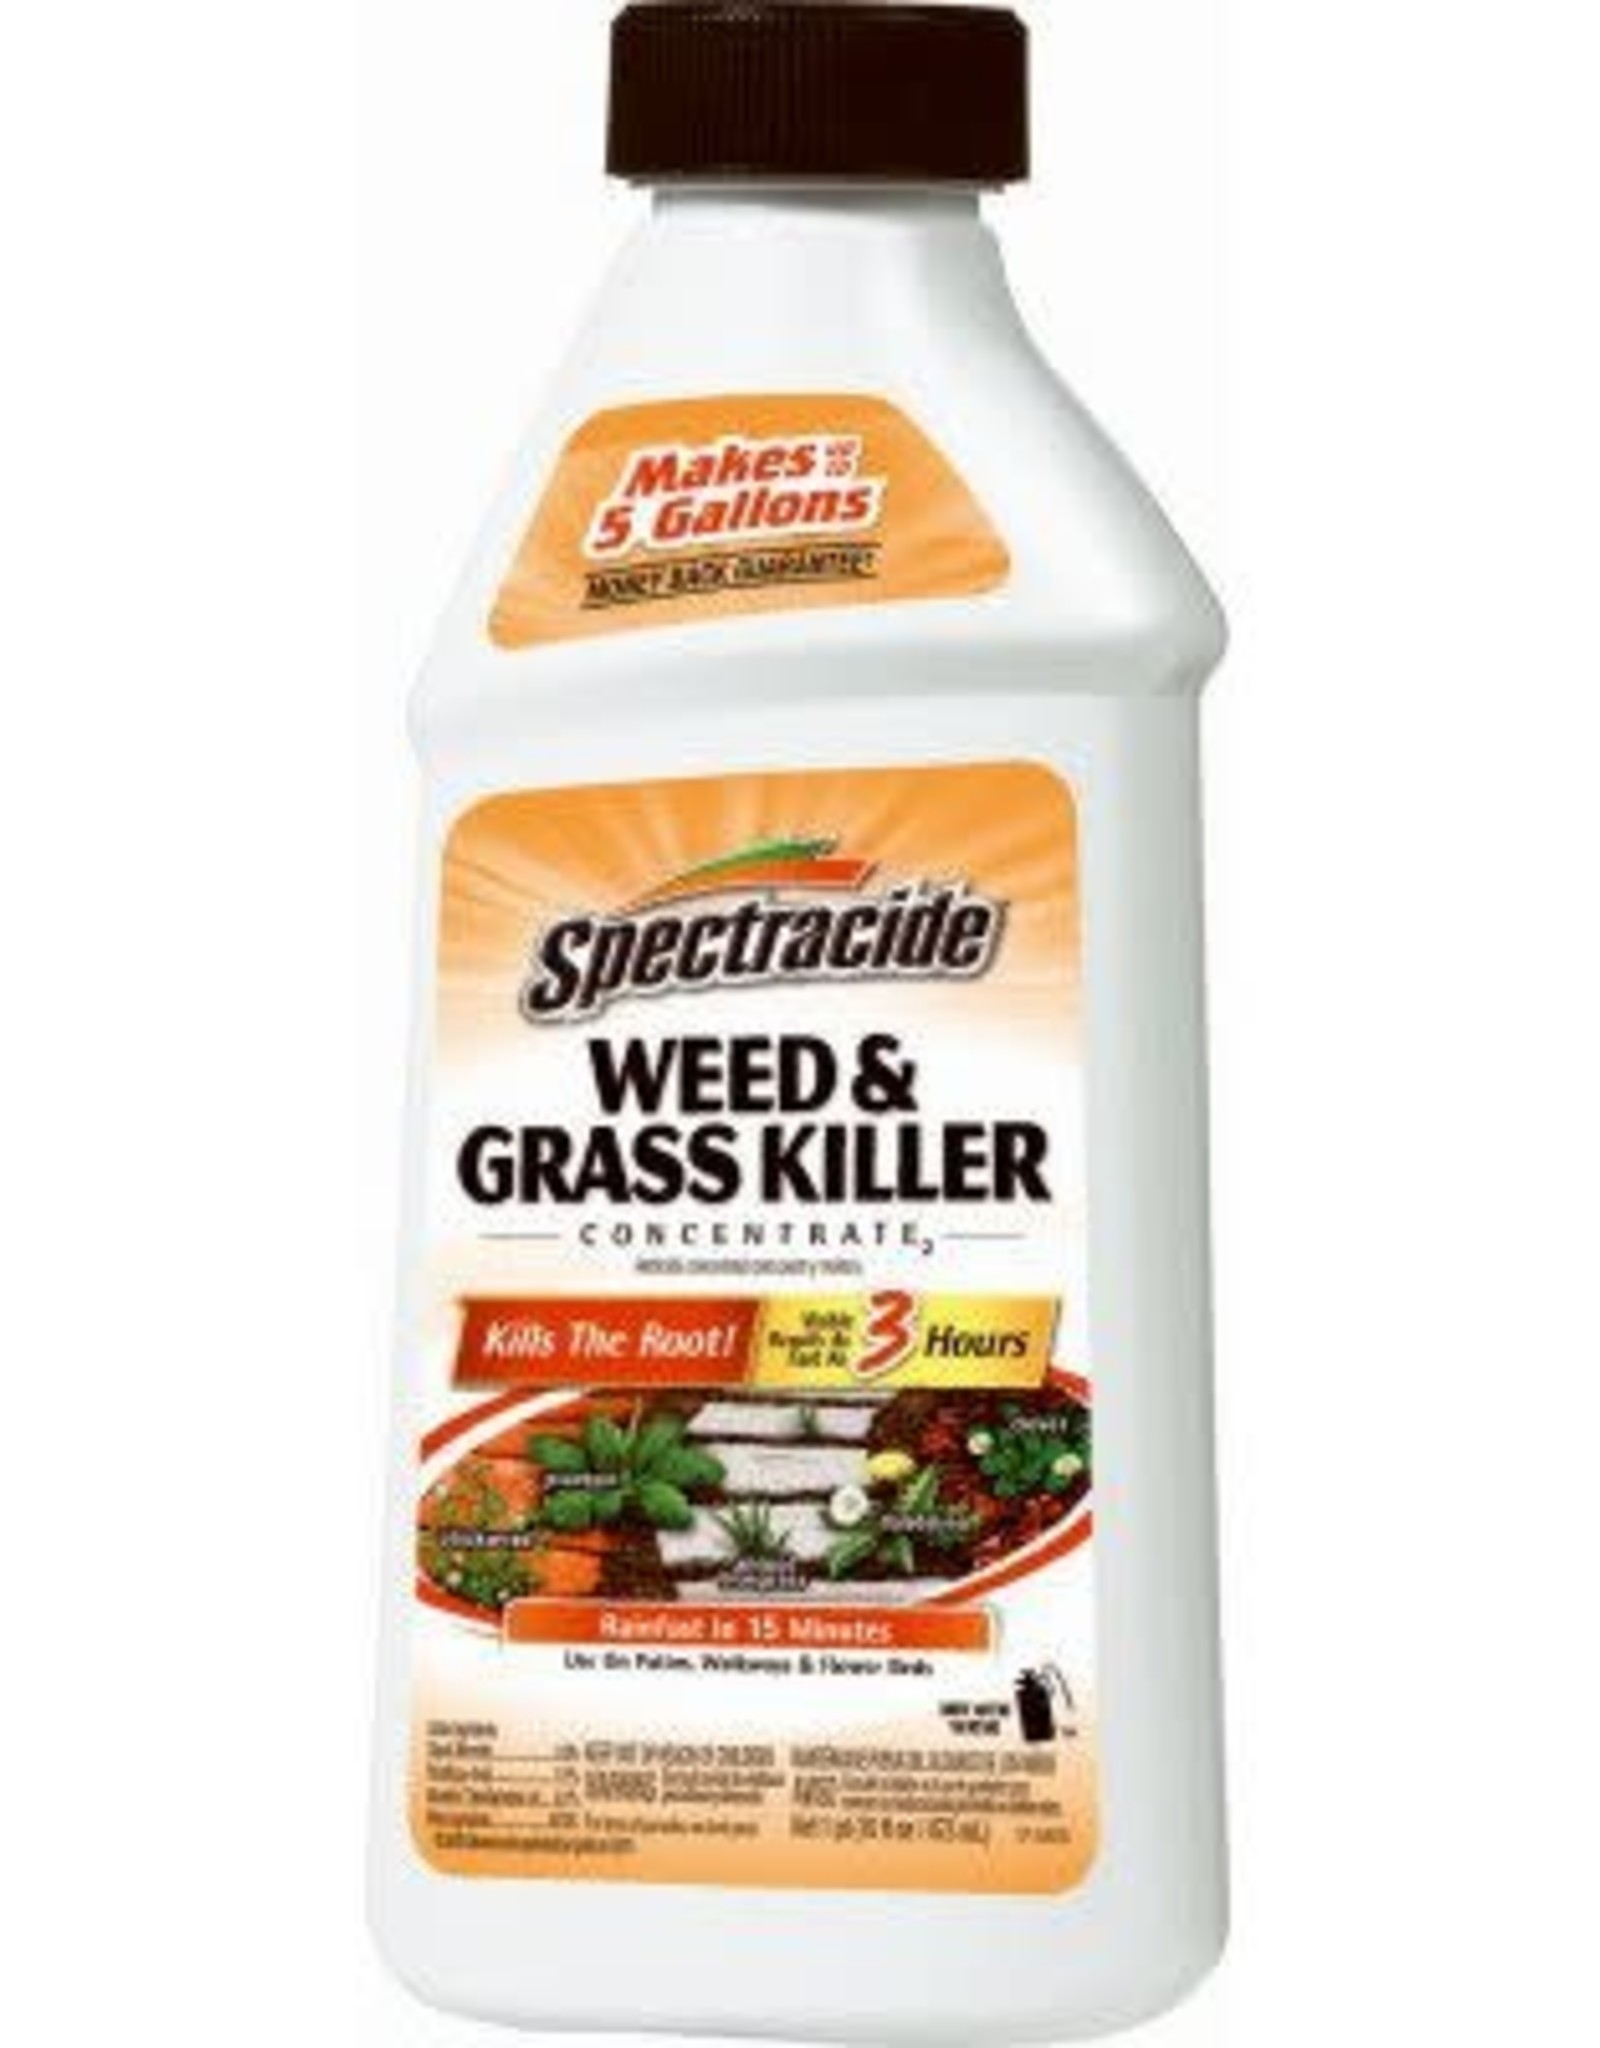 United Ind. Corp/Spectrum Spectracide Weed & Grass Killer for Lawns 1 Pint 66001